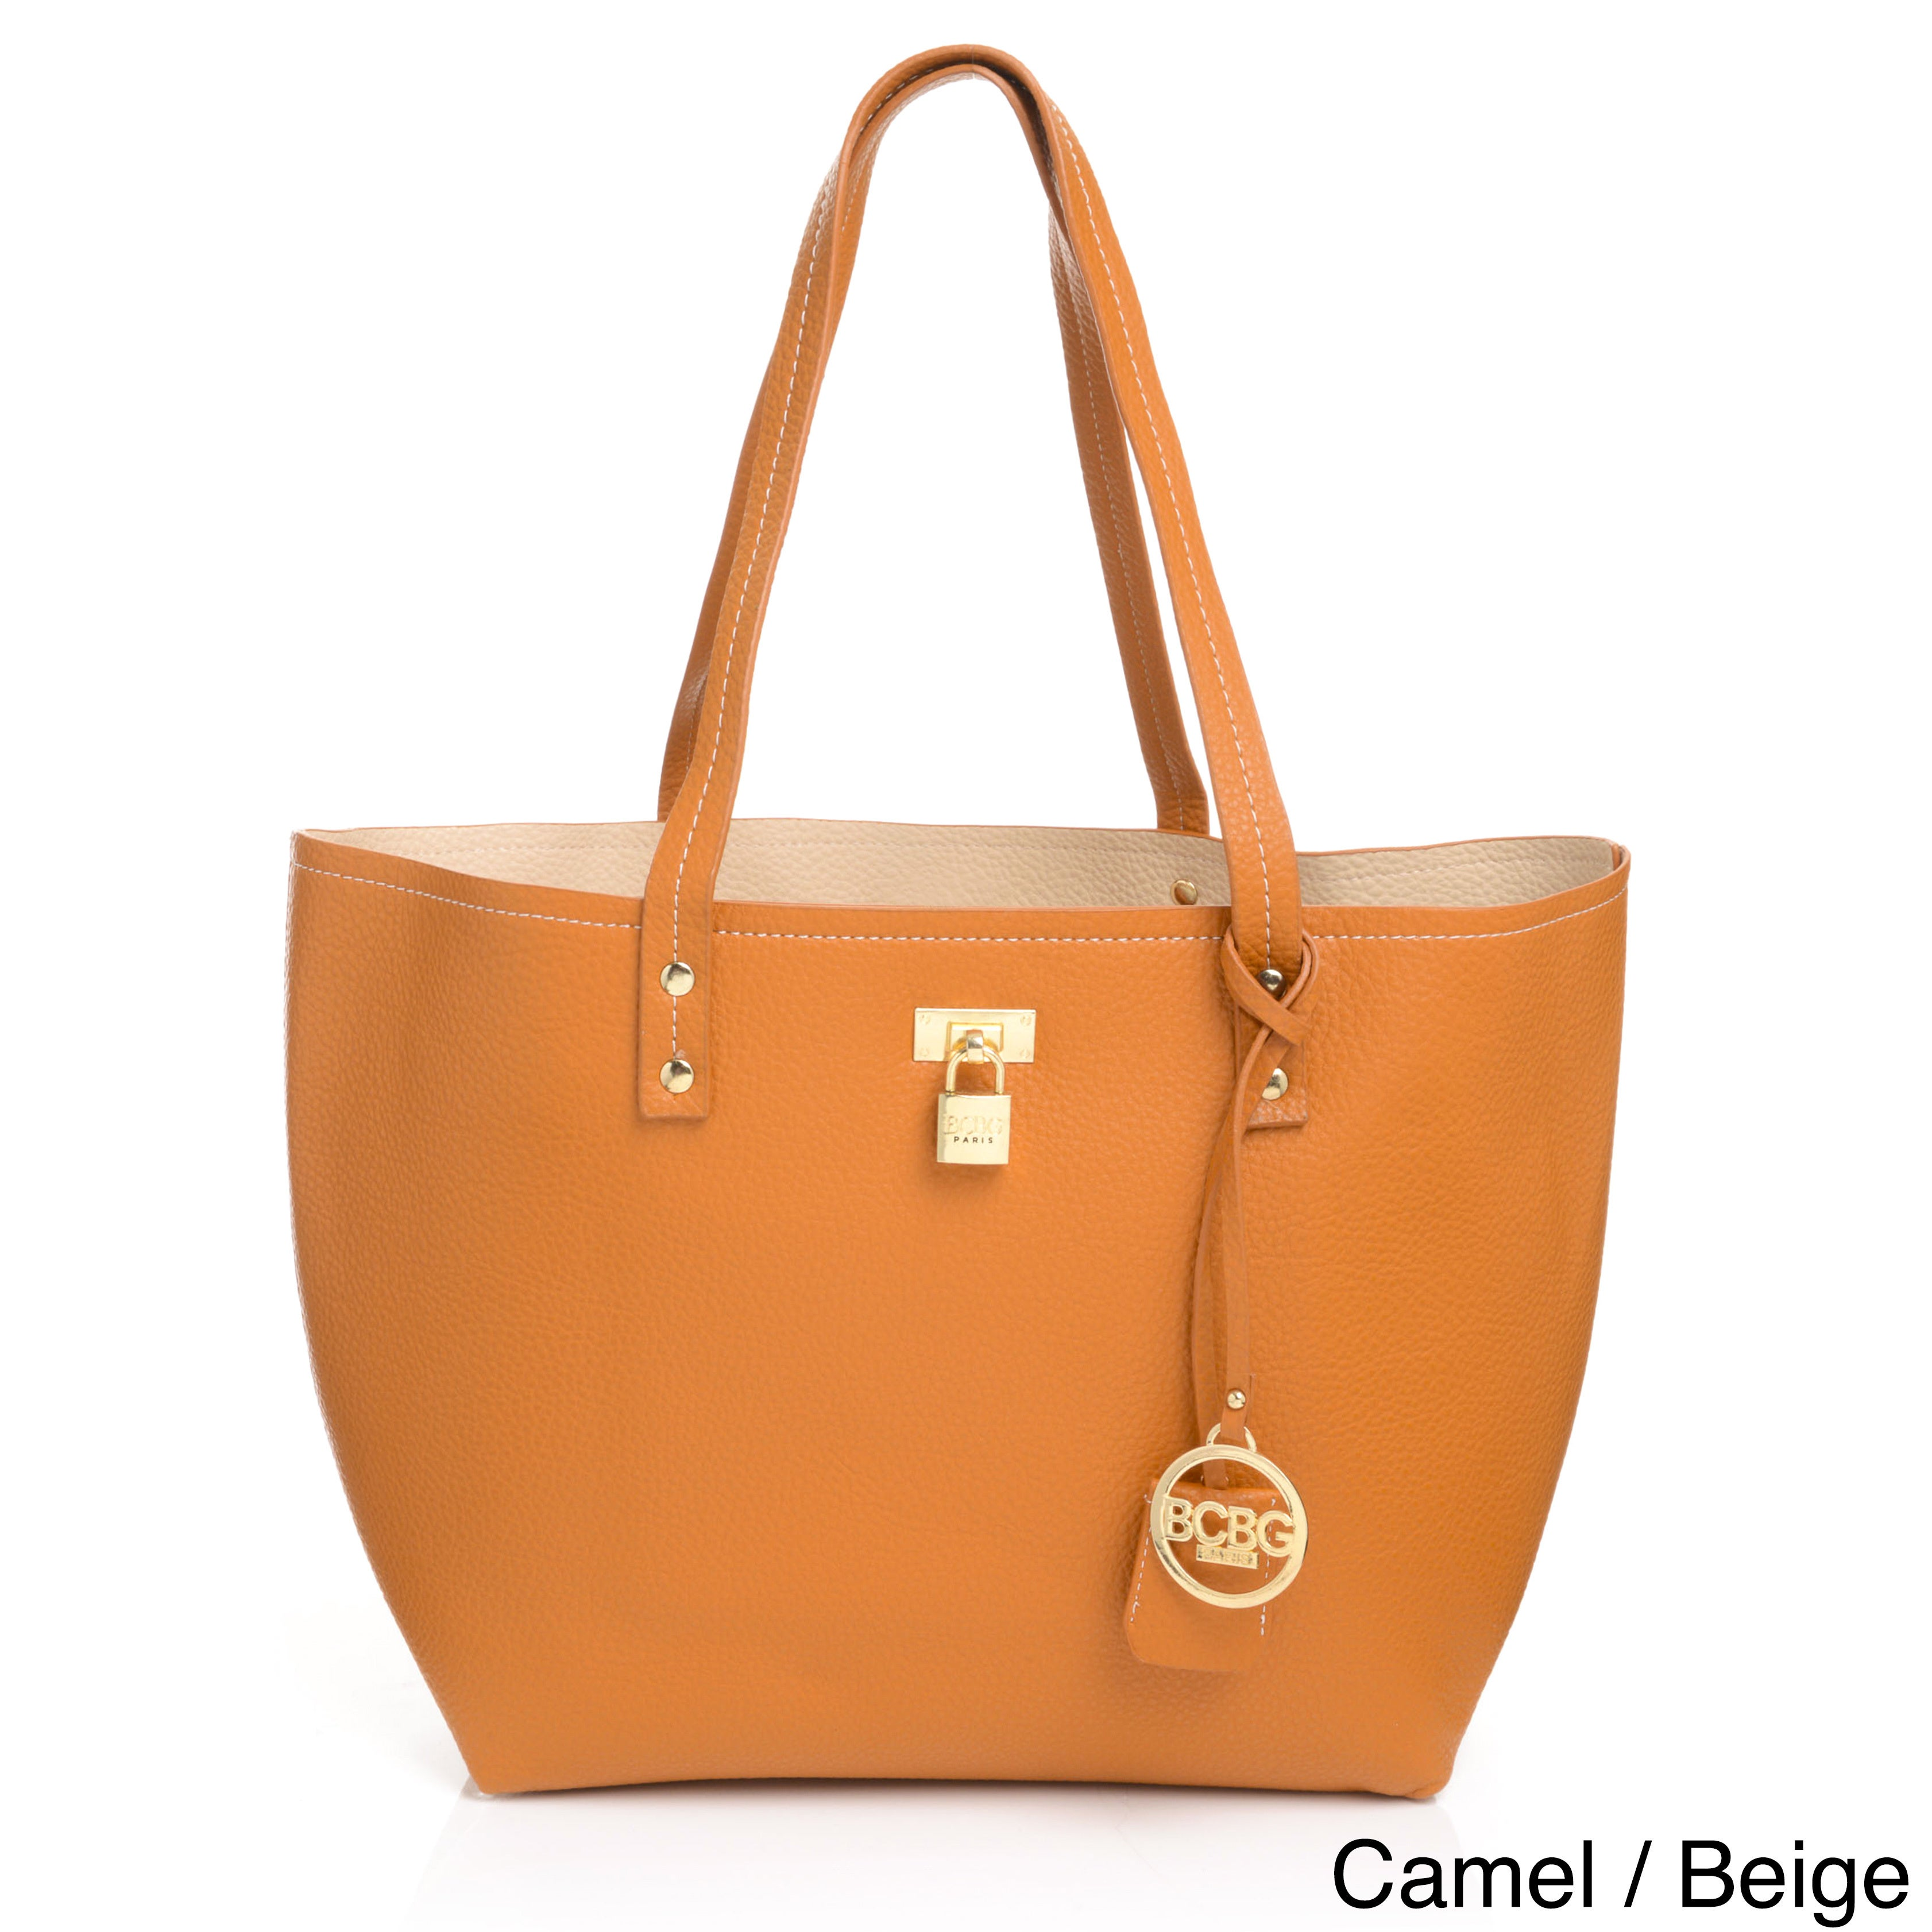 cc23163d63ef Shop BCBG Paris Faux Leather Reversible Twist-lock Tote Bag - Free Shipping  Today - Overstock - 11878566